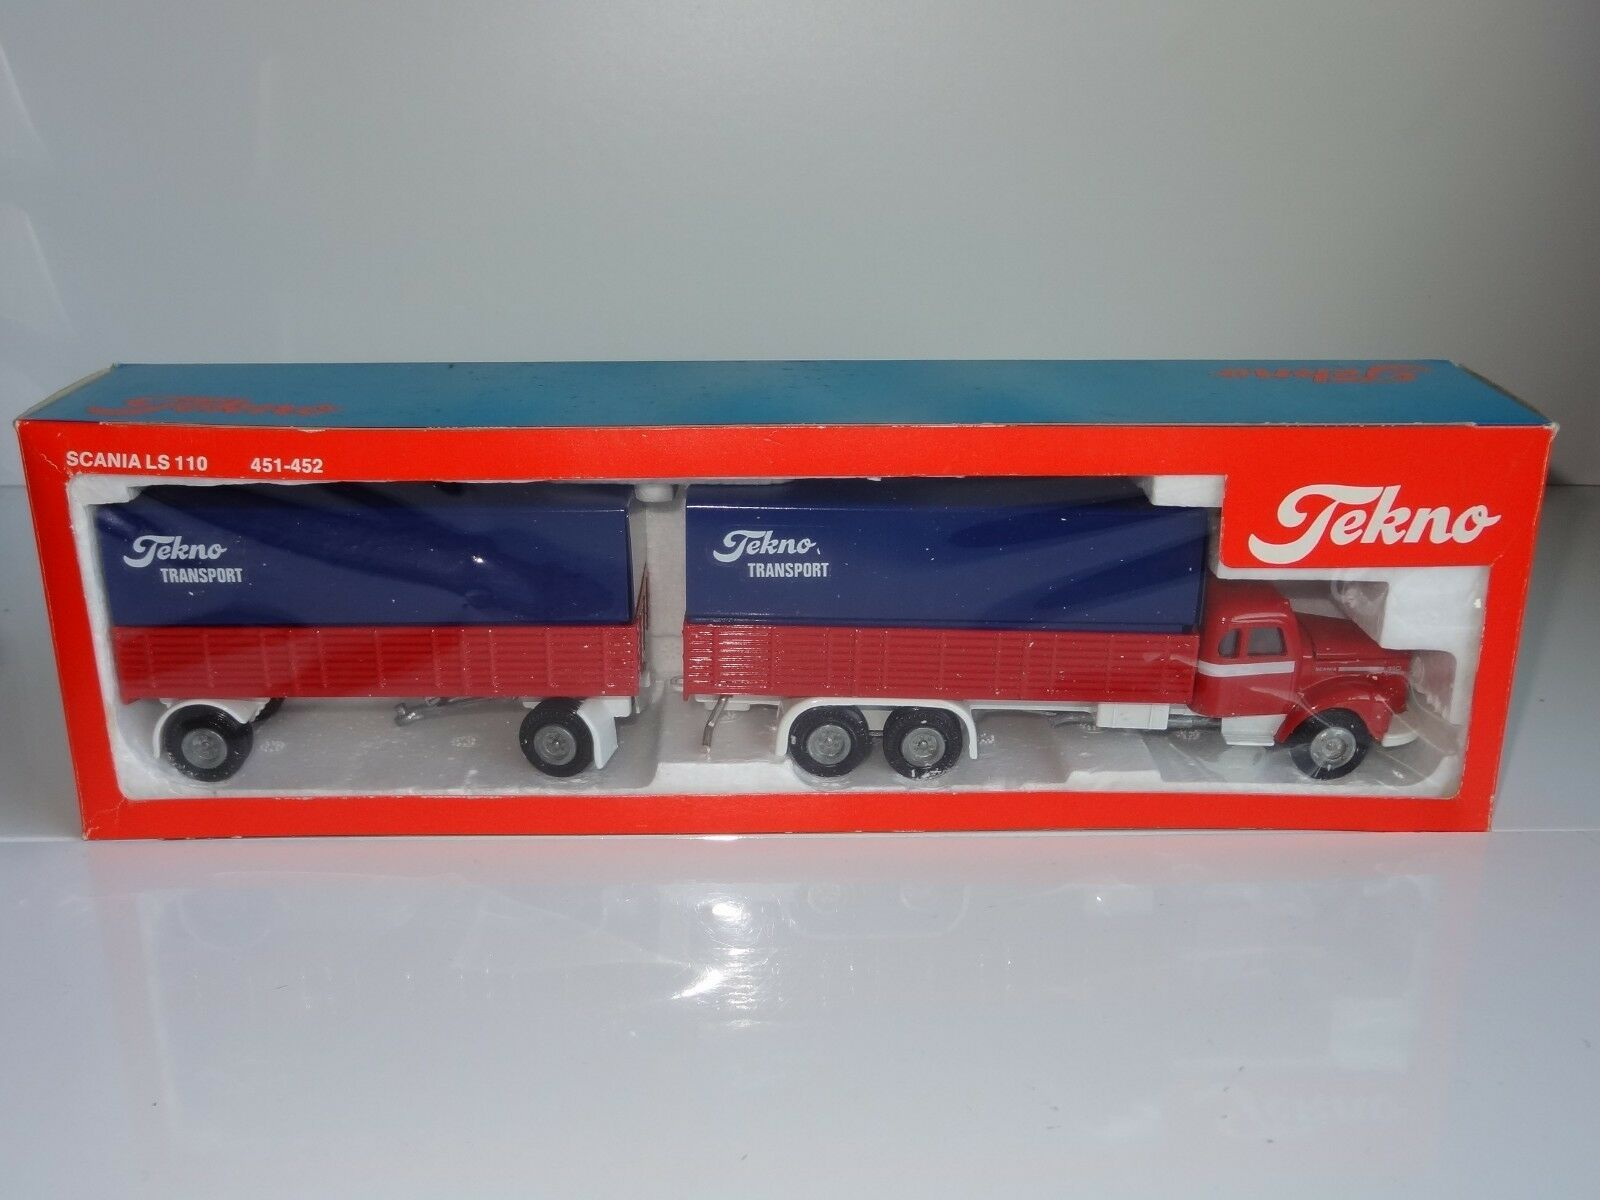 (V) tekno -  SCANIA Ls 110 & TRAILER TEKNO TRANSPORT - 451   452